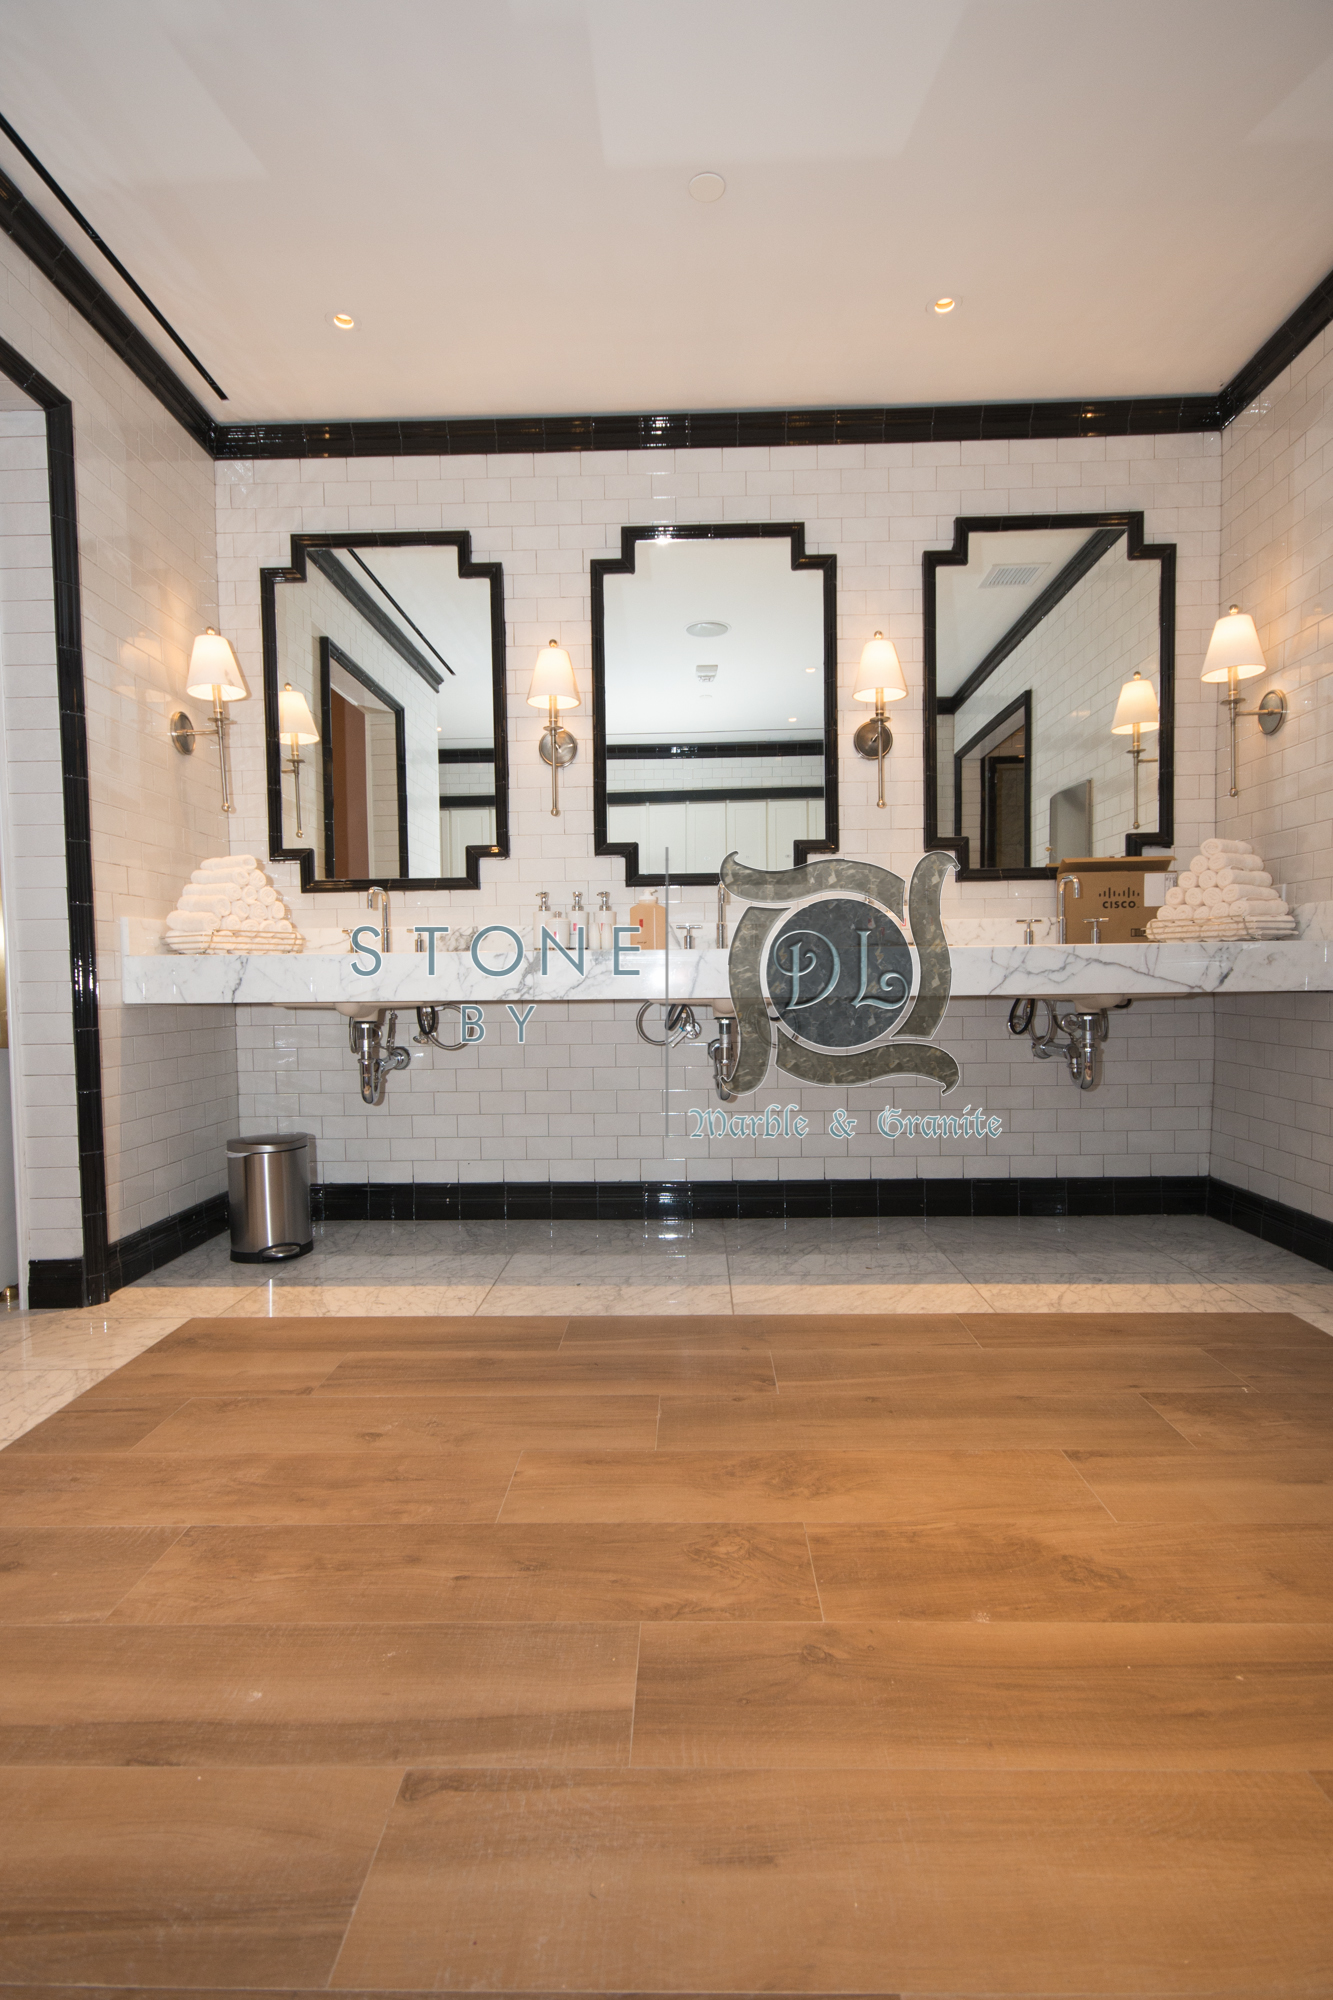 DSC_8281- Stone by DL Marble and Granite Inc. Elizabeth Arden - Red Door Spa - 200 Park Avenue South - New York.jpg